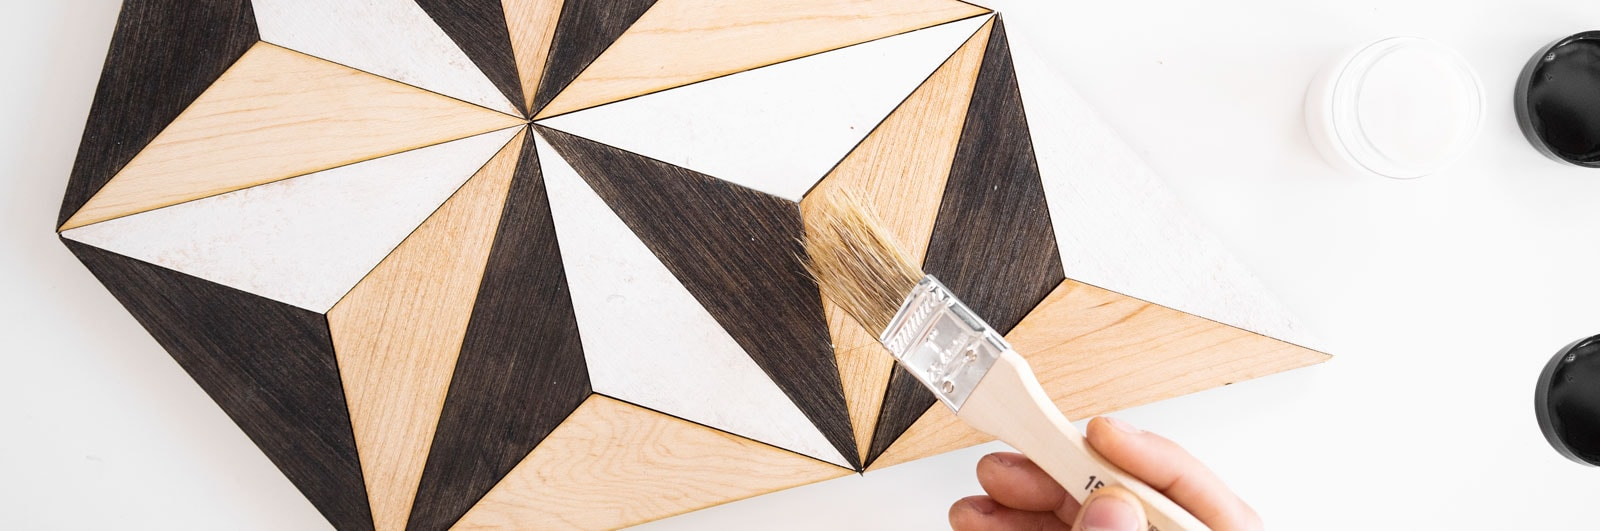 Geometric Wood Art | Nicole Sweeney